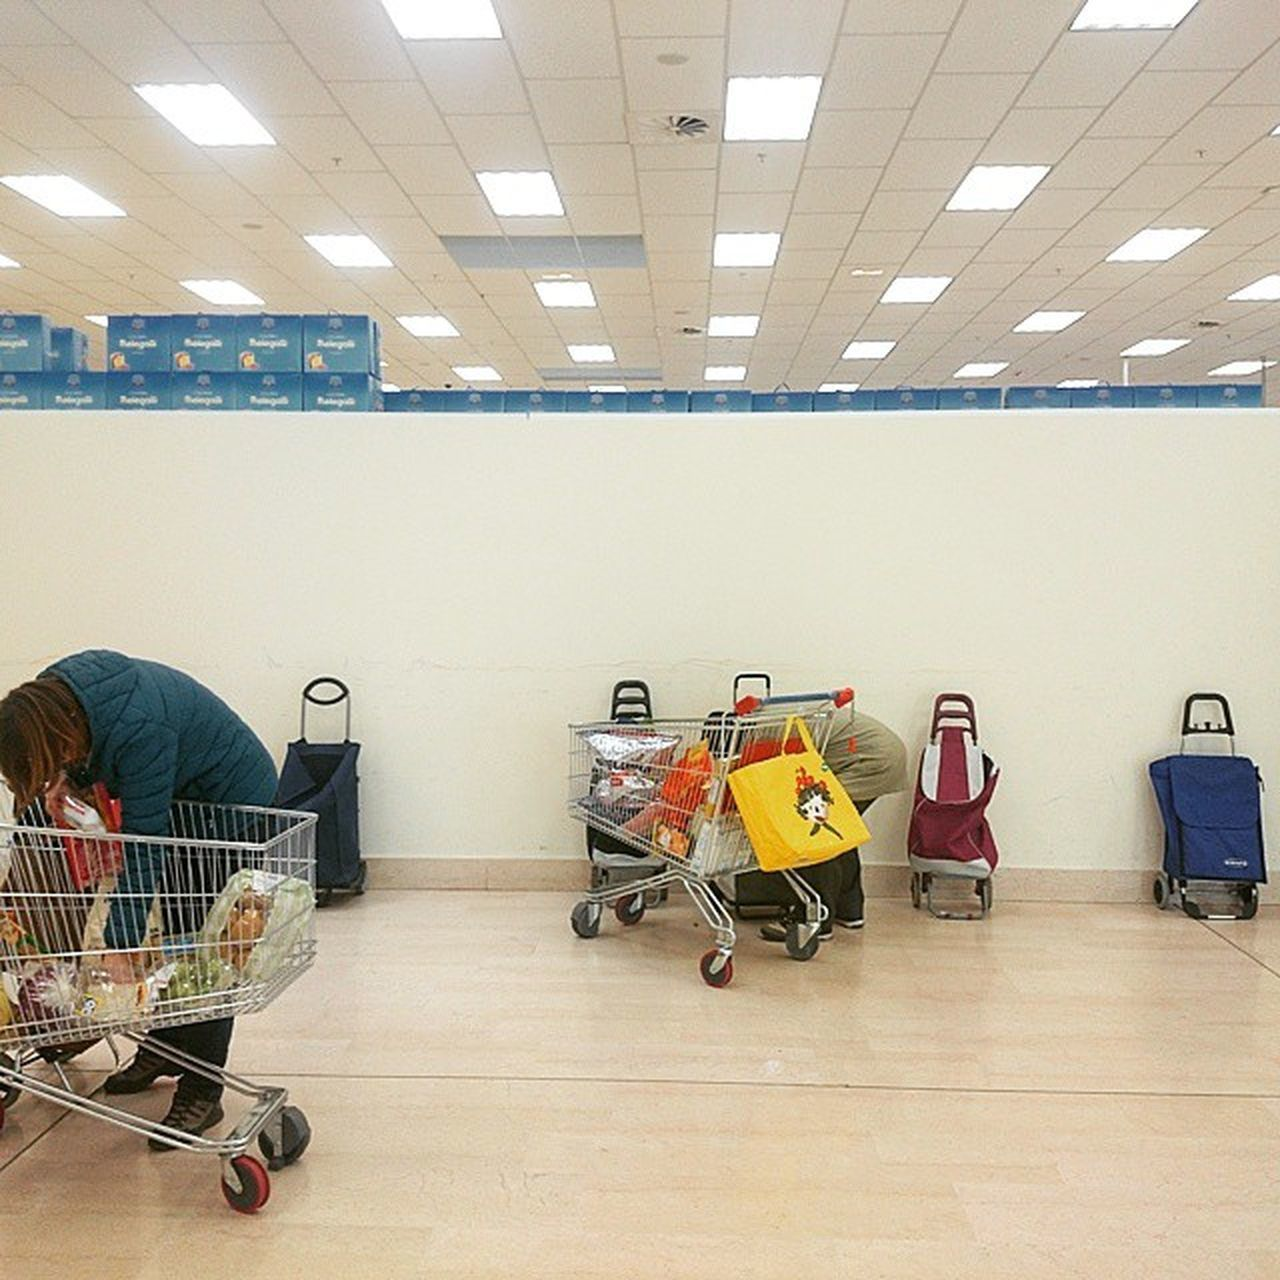 indoors, trolley, shopping cart, consumerism, real people, full length, men, supermarket, one person, day, people